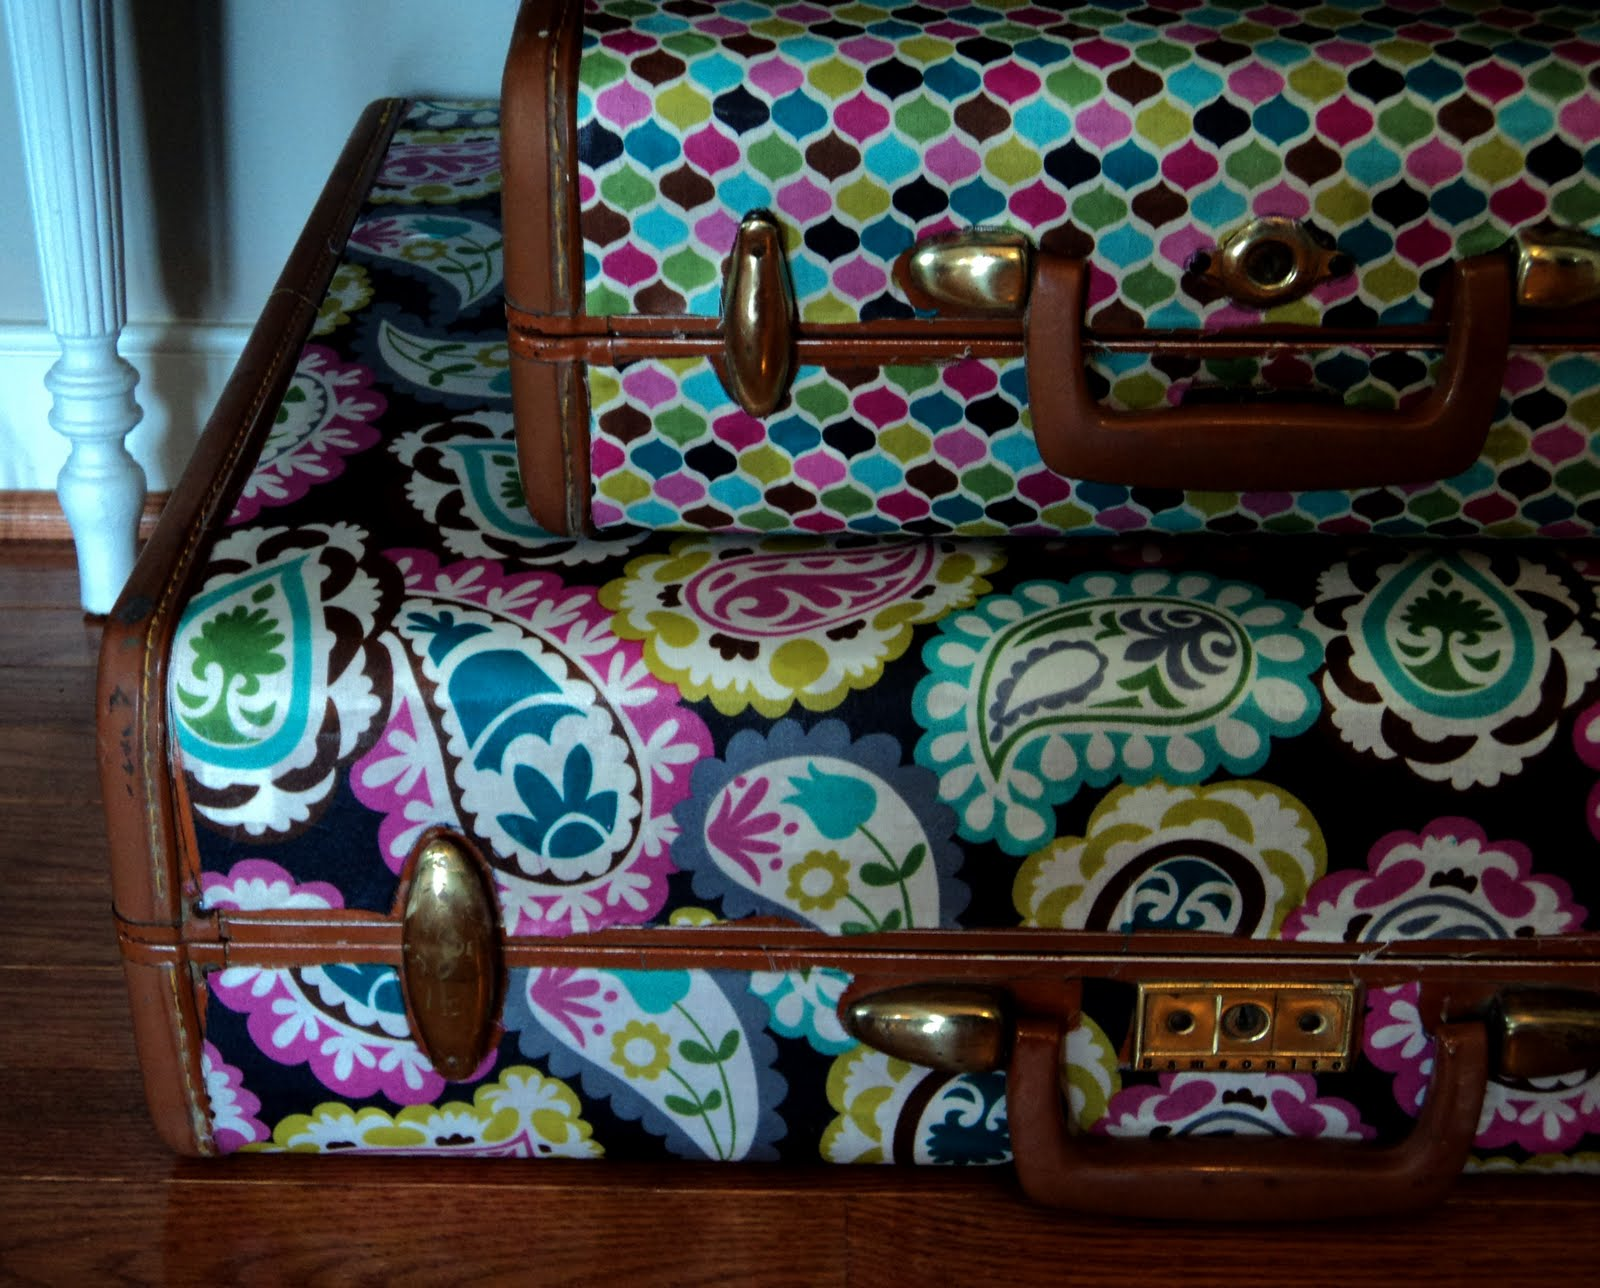 Vintage suitcase fabric makeover